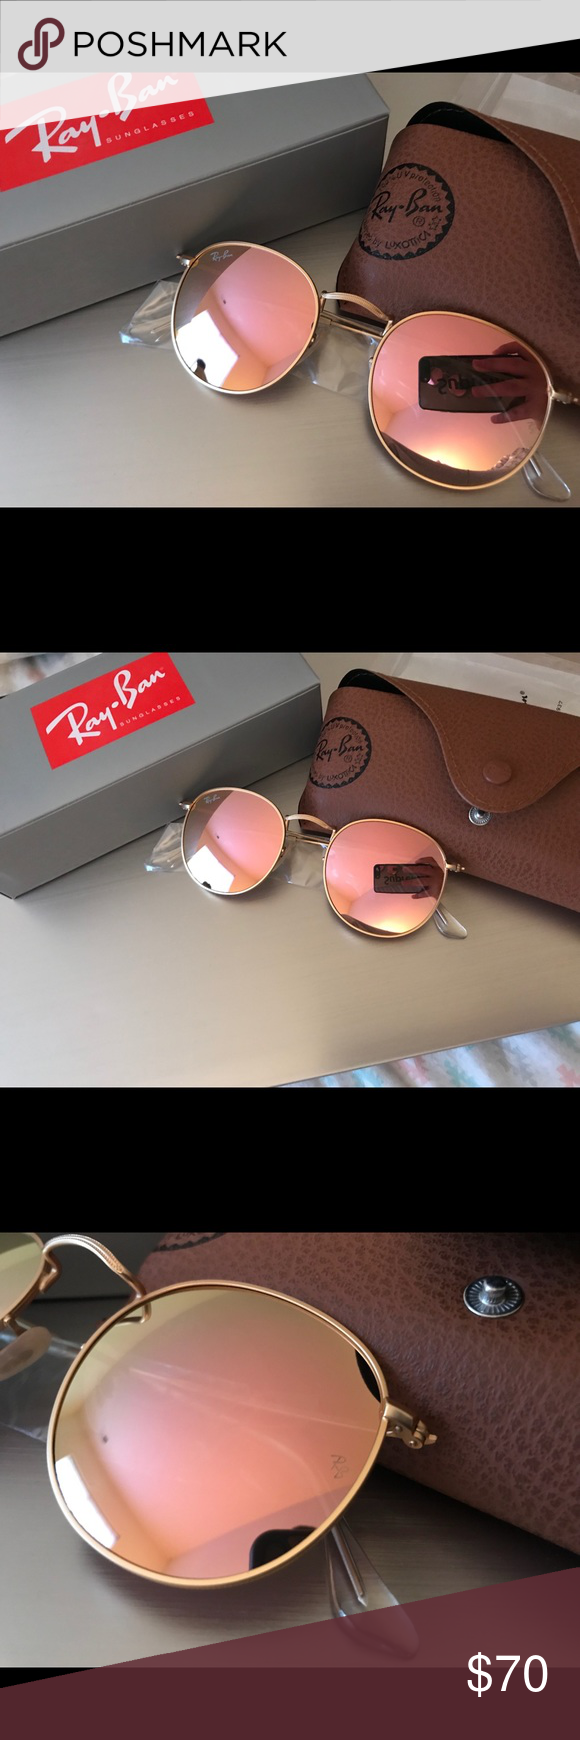 87b982dd25c Brand New Authentic Ray-Ban RB3447 Round Metal Brand New Ray-Ban RB3447  Round